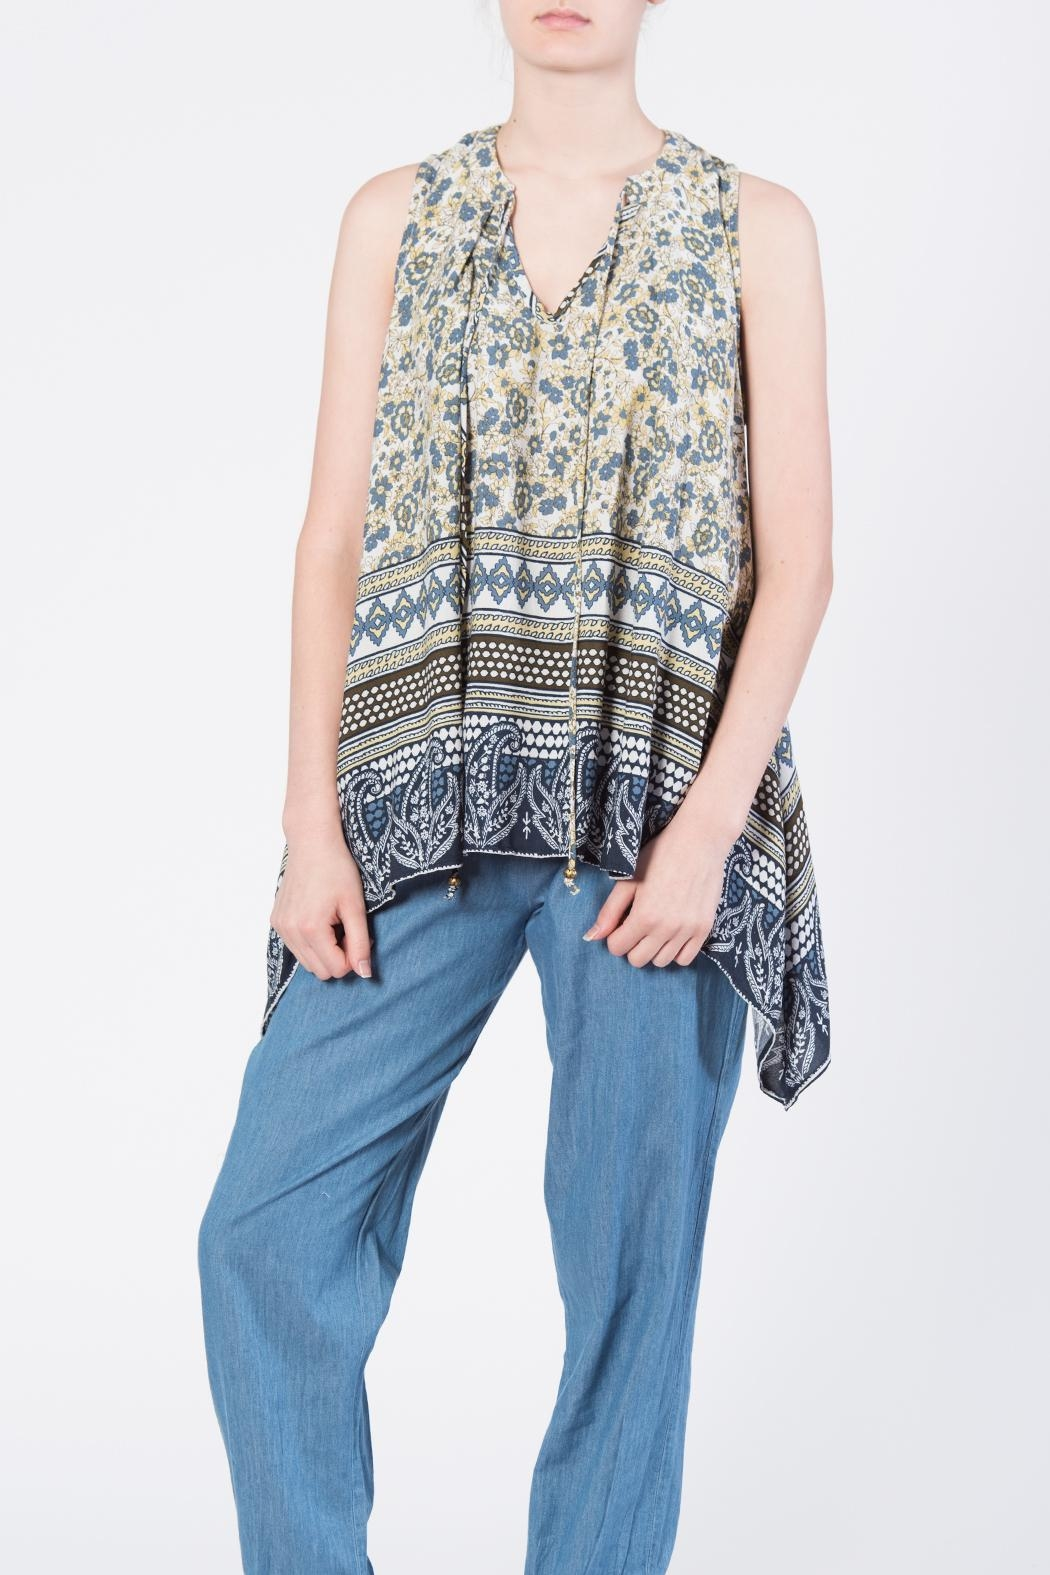 annabelle Print Tie Top - Side Cropped Image